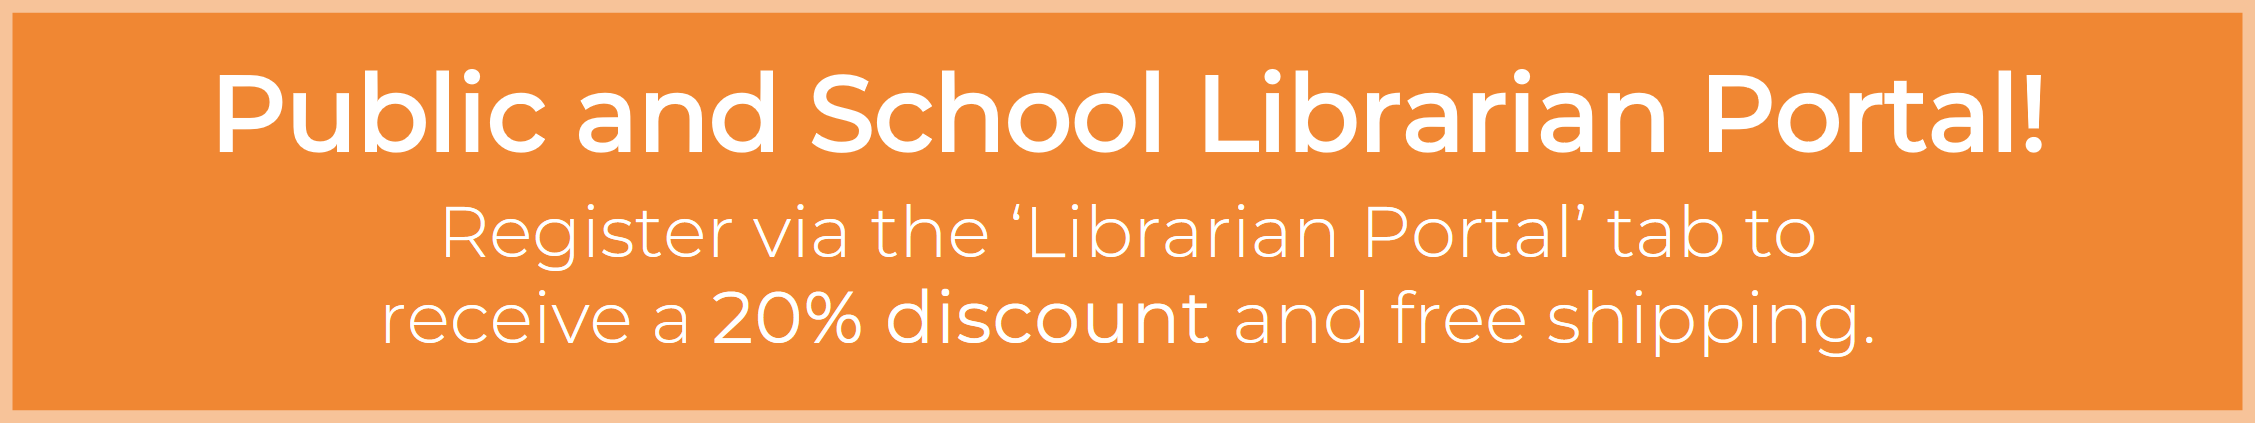 Register via the 'Librarian Portal' tab to receive a 20% discount and free shipping.